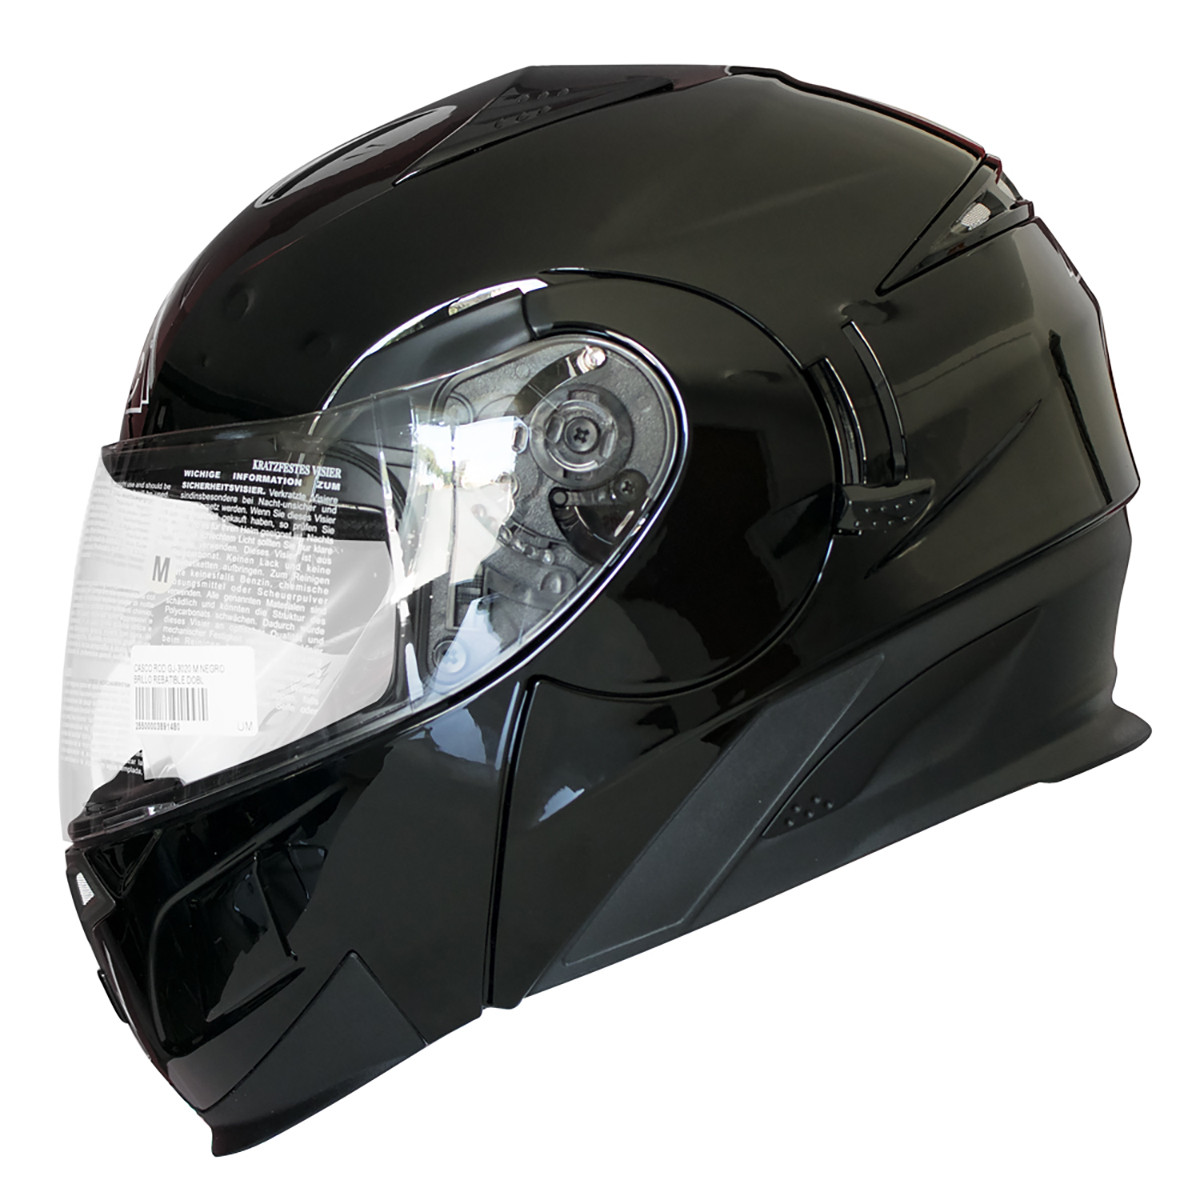 Casco Rebatible Rod Naser 3020